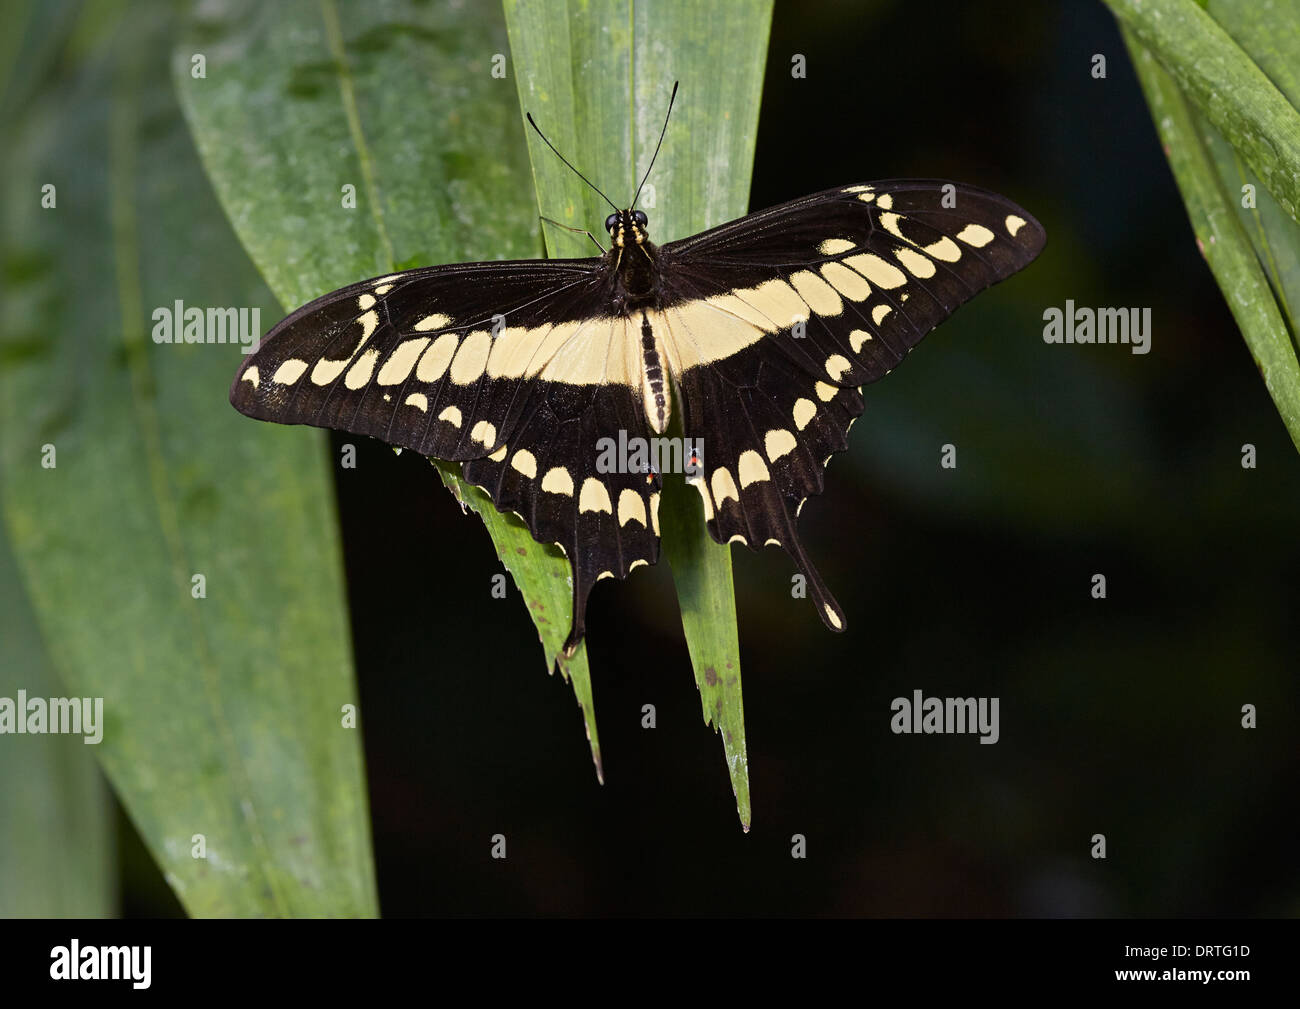 The King Swallowtail or Thoas Swallowtail Papilio thoas dorsal or open view from Papilionidae family Central and South America - Stock Image